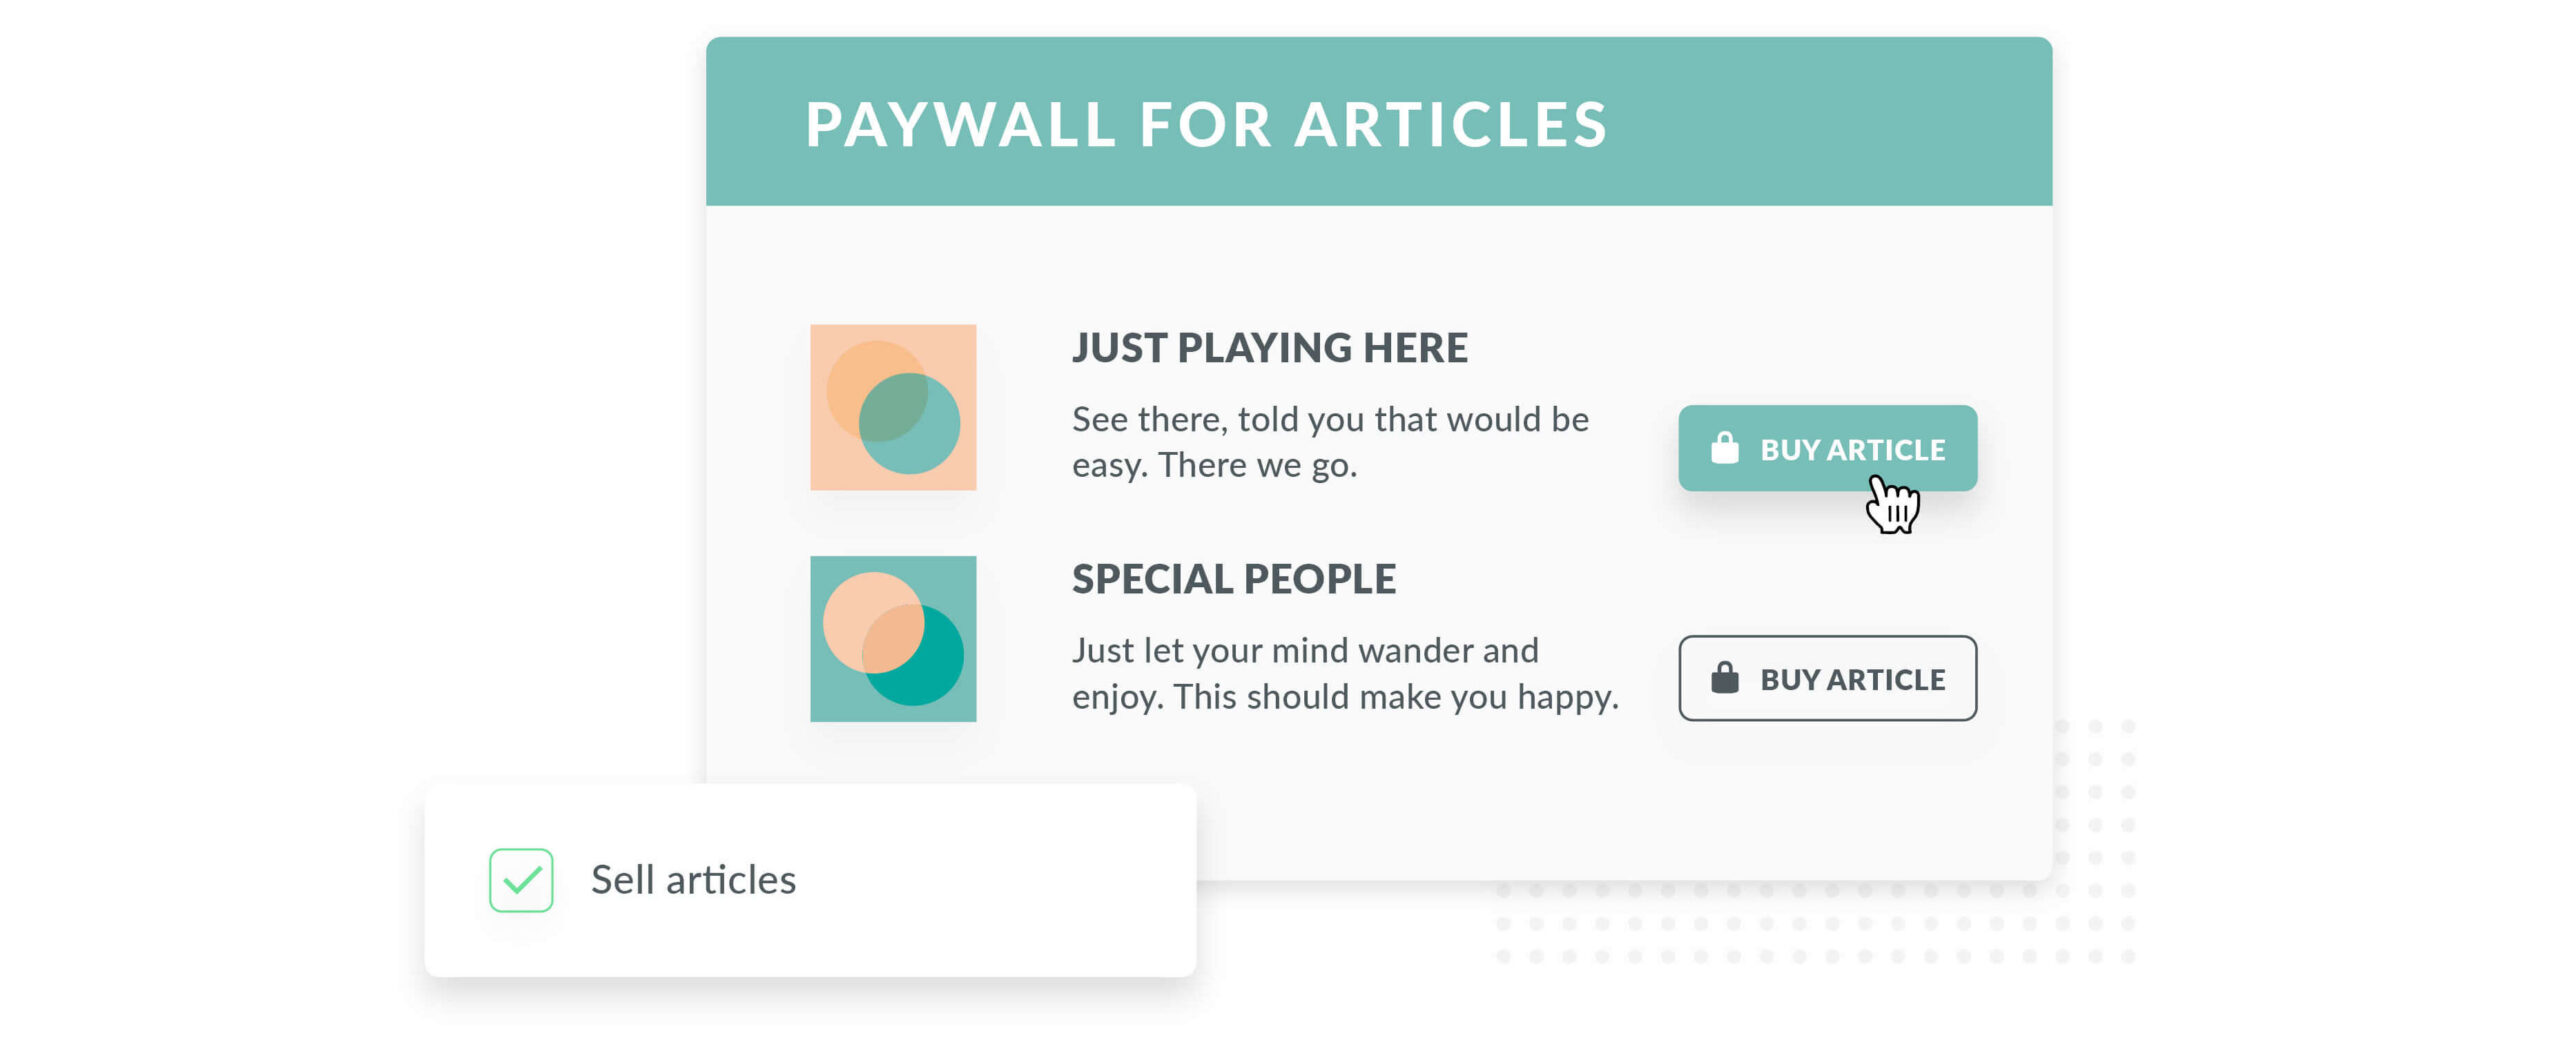 Paywall ePaper Shop Abo Subscription